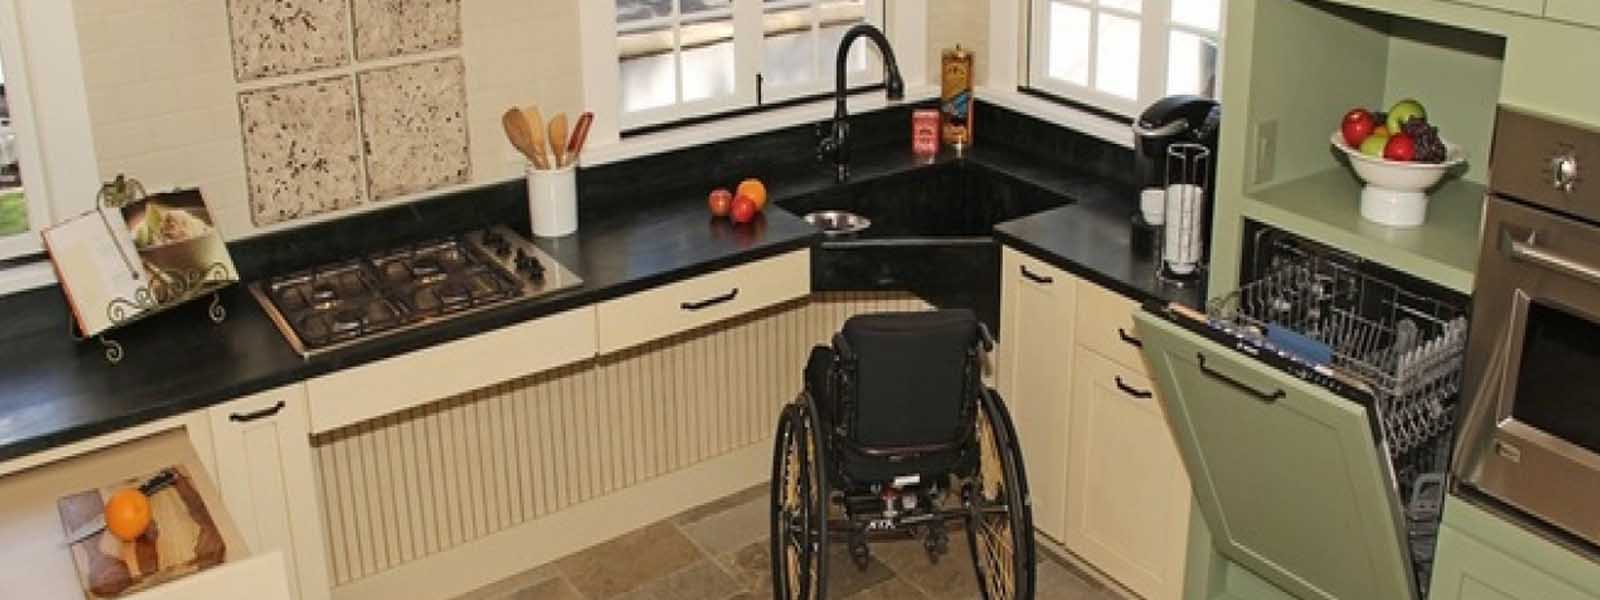 Wheelchair accessible kitchen tables appliances ideas for Wheelchair accessible kitchen ideas